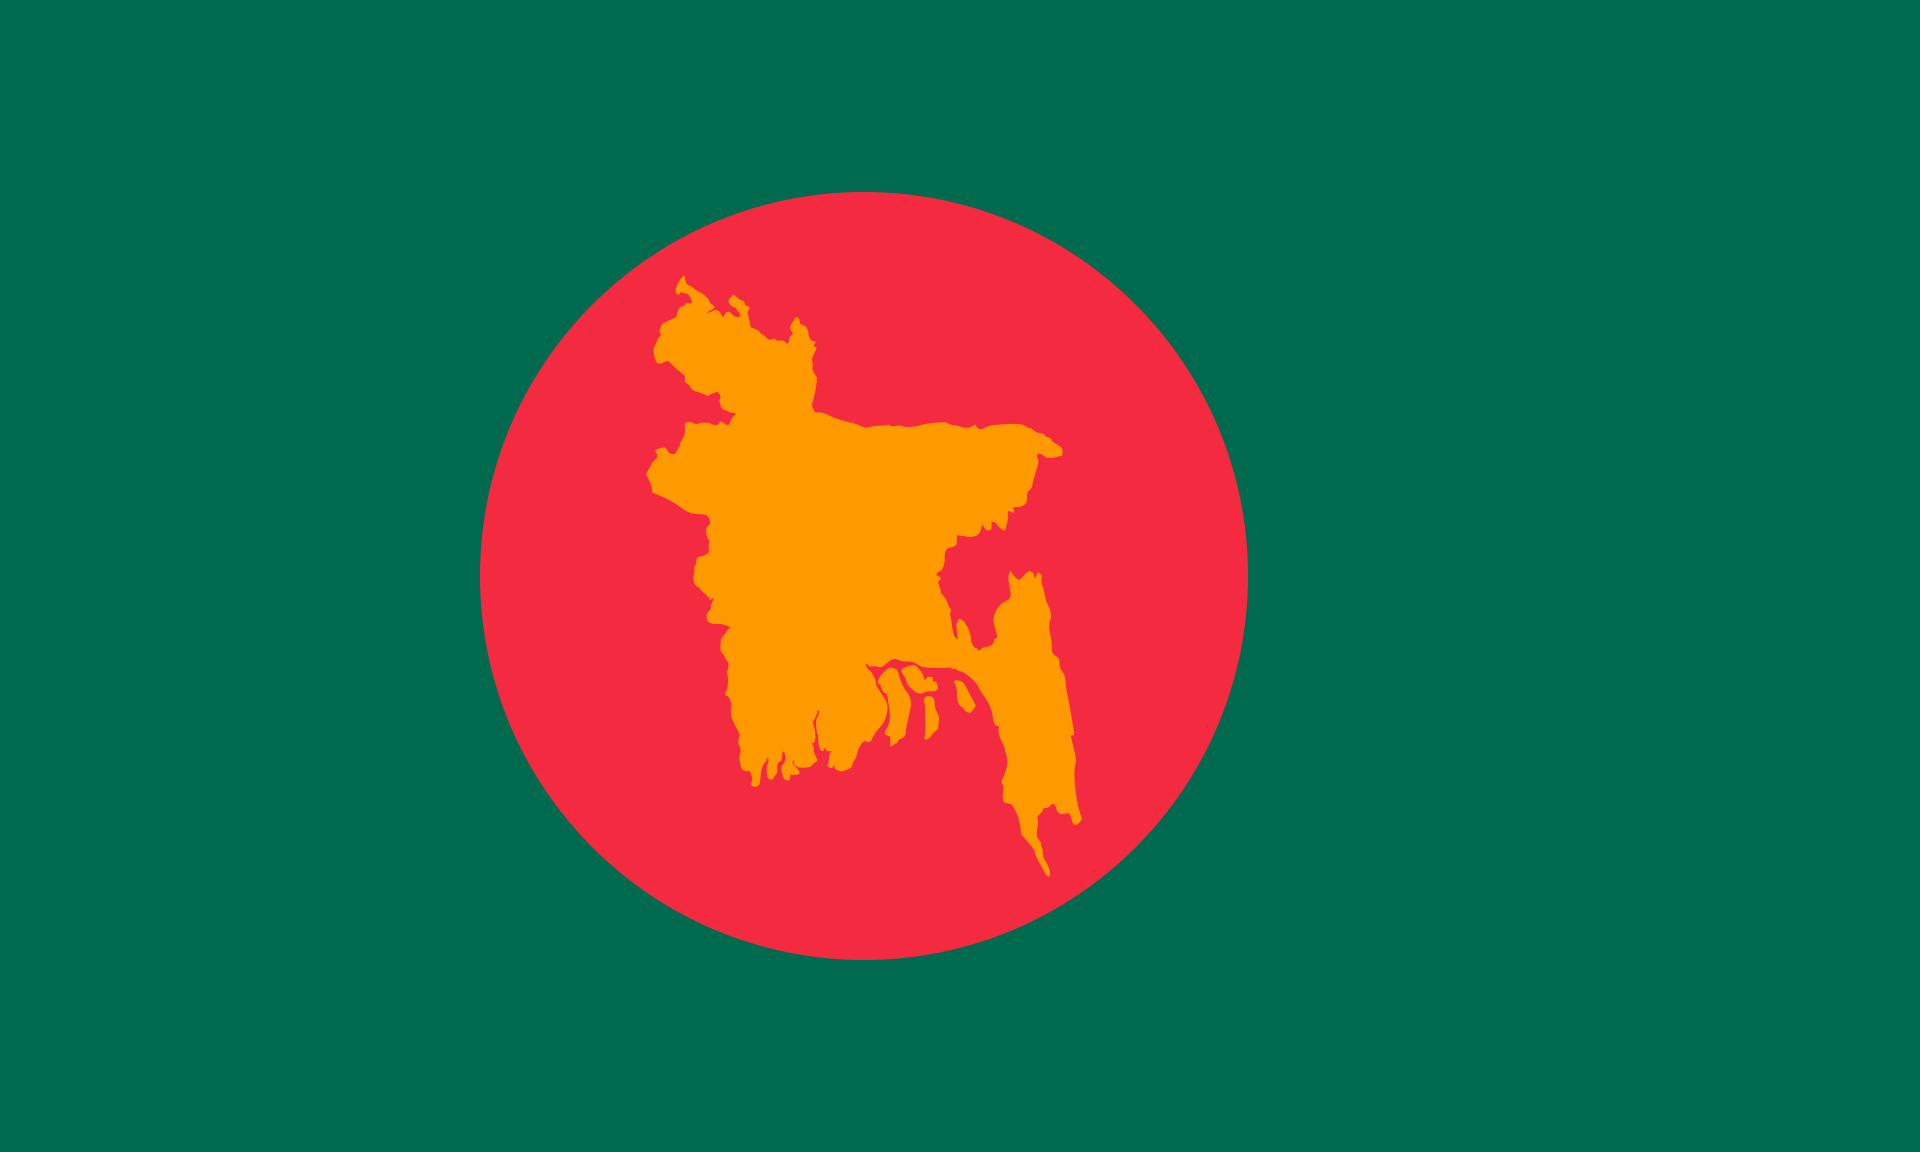 First Flag of Bangladesh (1971-1972)